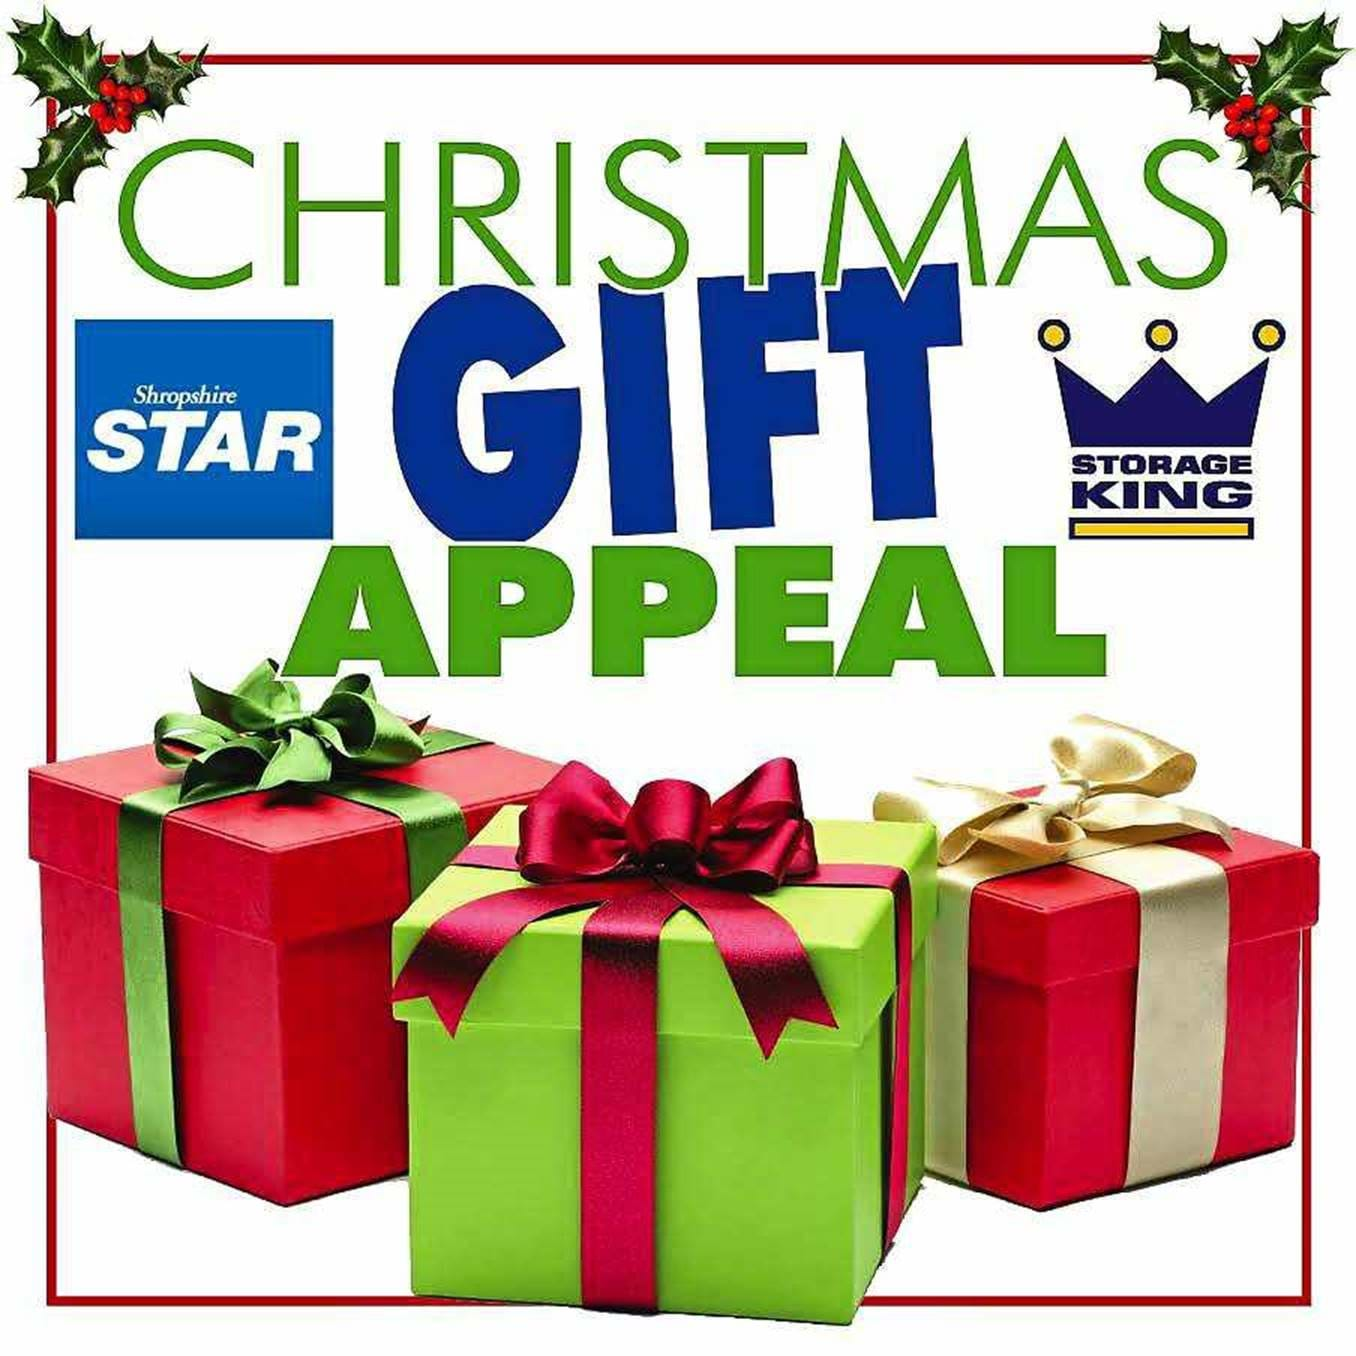 Christmas Gift Appeal: Storage King Shrewsbury Appeal For Christmas Gifts